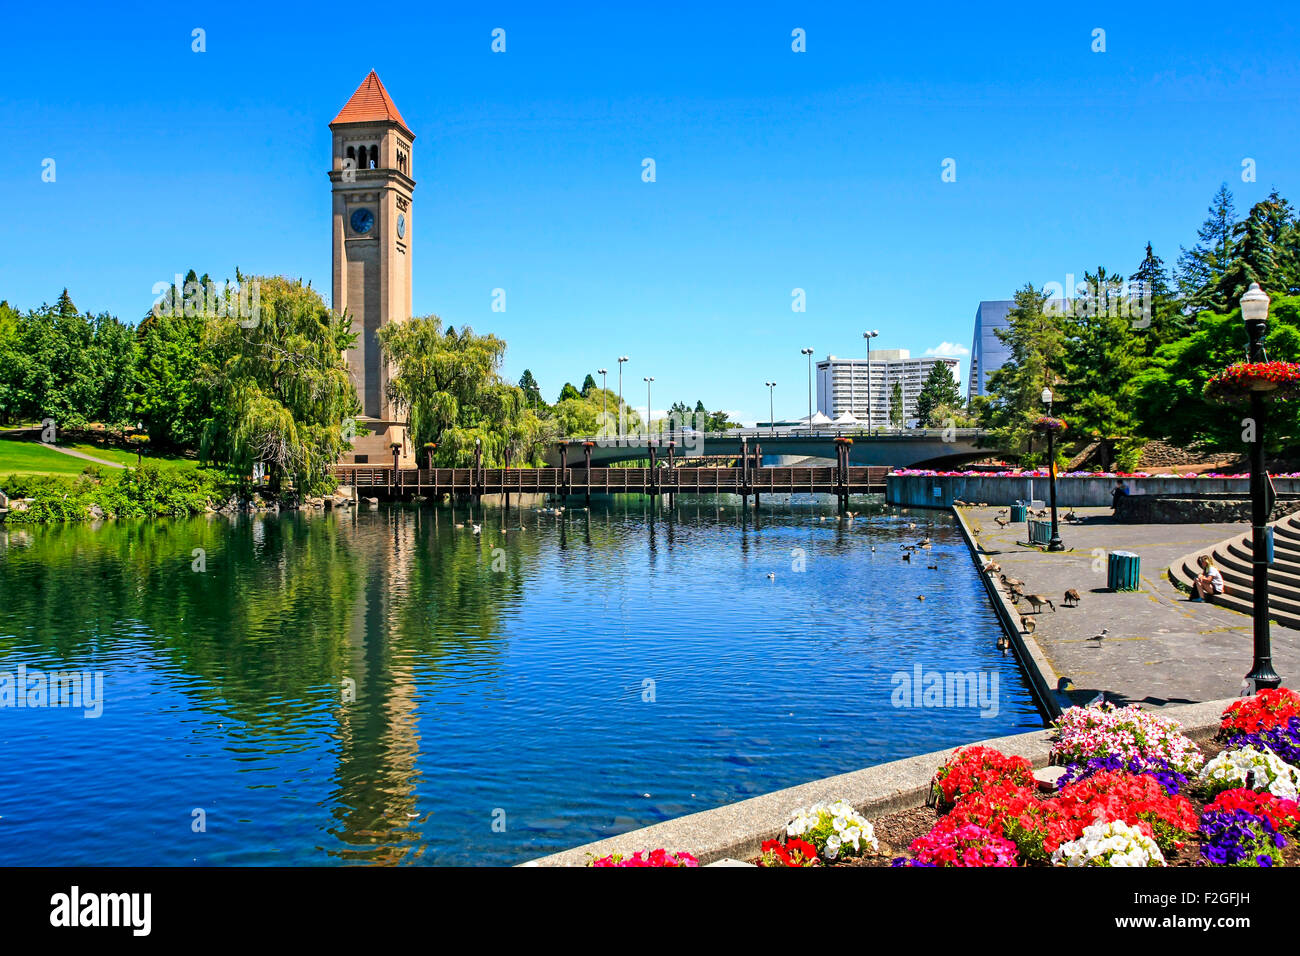 The Great Northern clock tower and U.S. Pavilion in Riverfront Park, Spokane in Washington Stock Photo